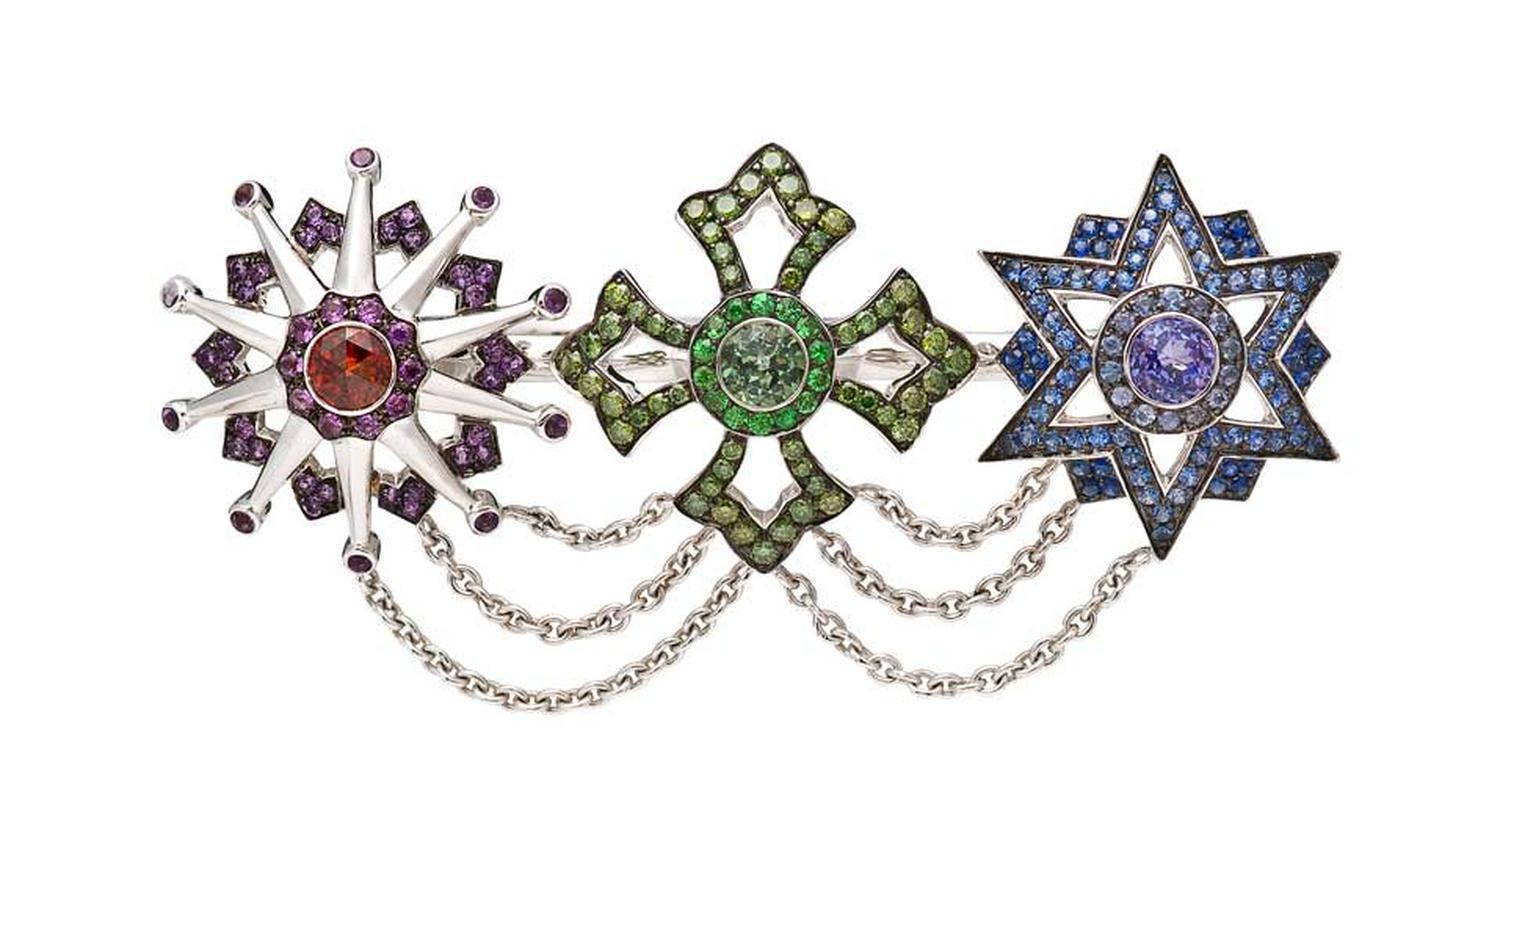 Garrard Star and Garter collection double ring featuring black gold with red garnet, amethyst, green diamond, tsavorites, green tourmaline, tanzanite and blue sapphire.